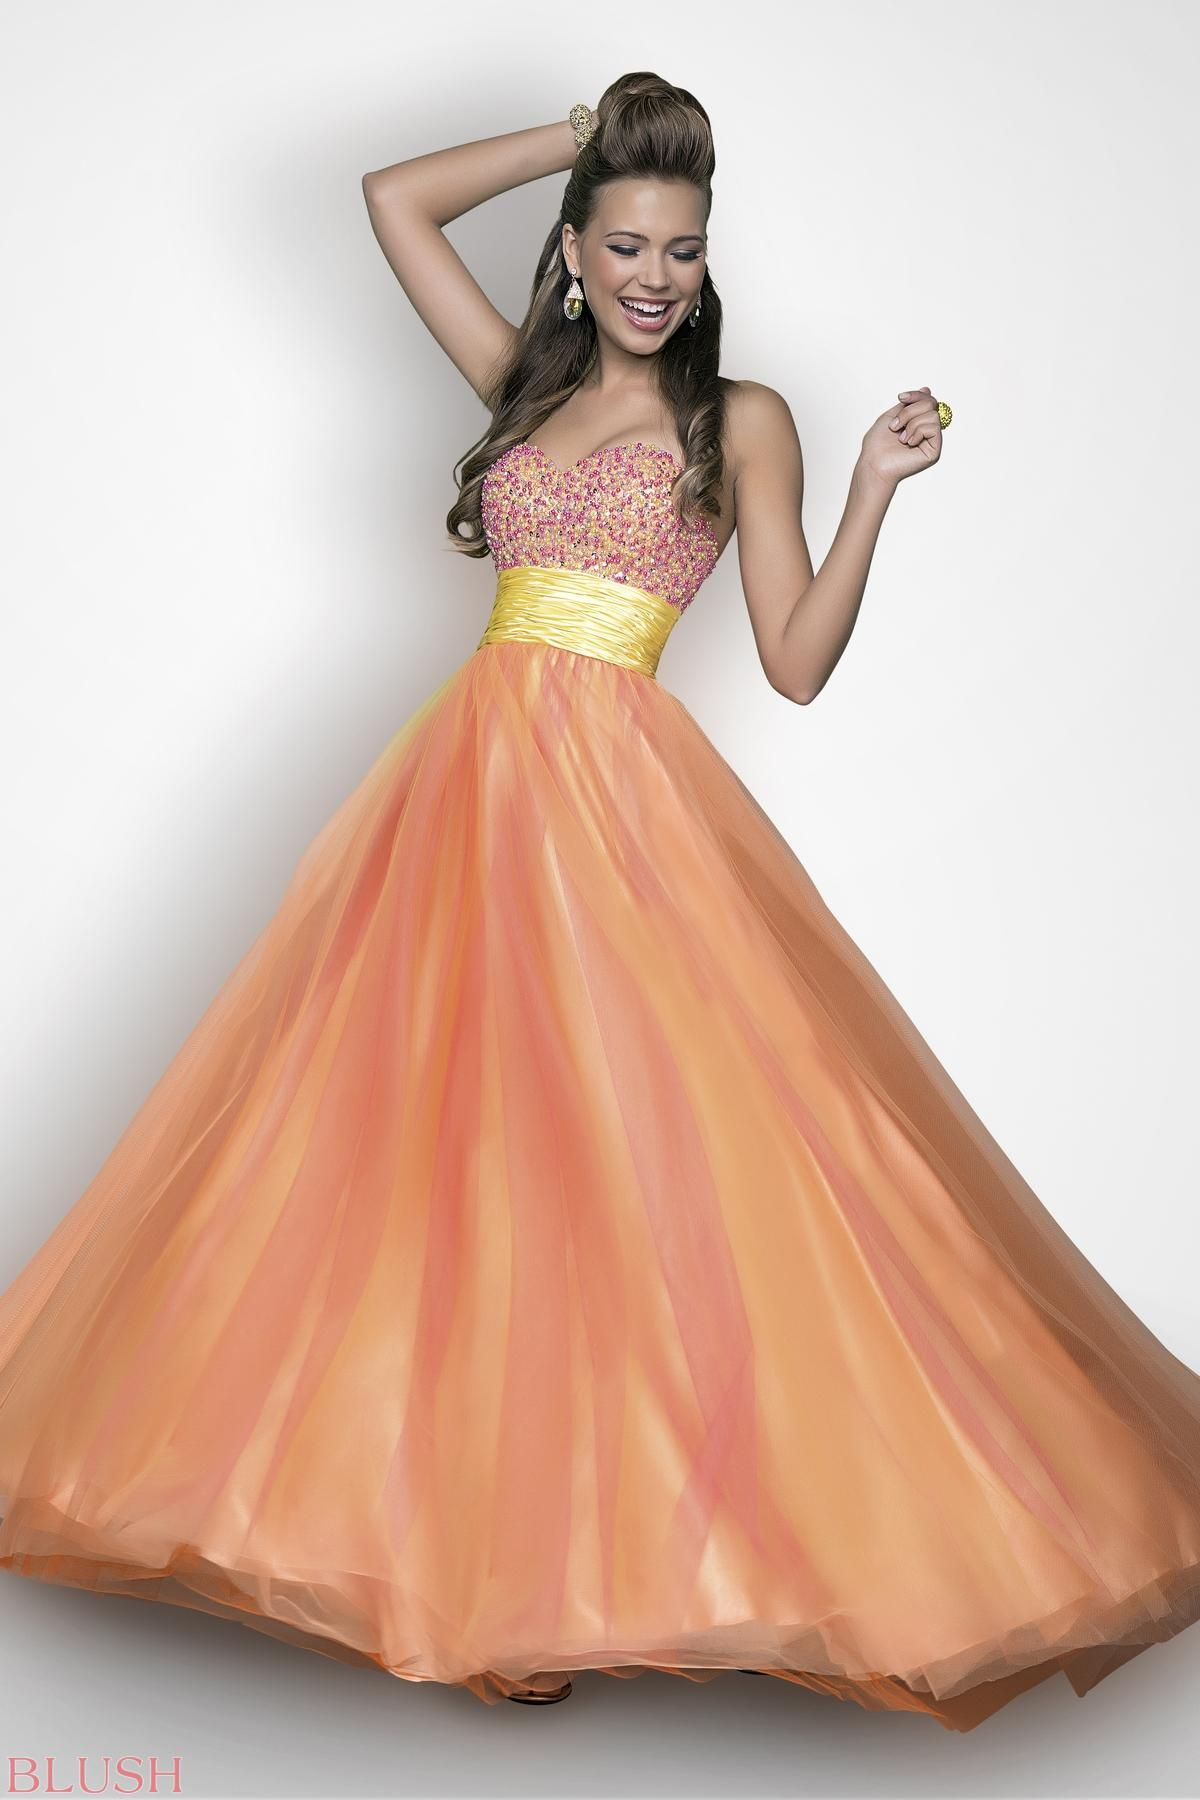 Pastel beads rock this sexy prom dress jeweled baby pearls drape